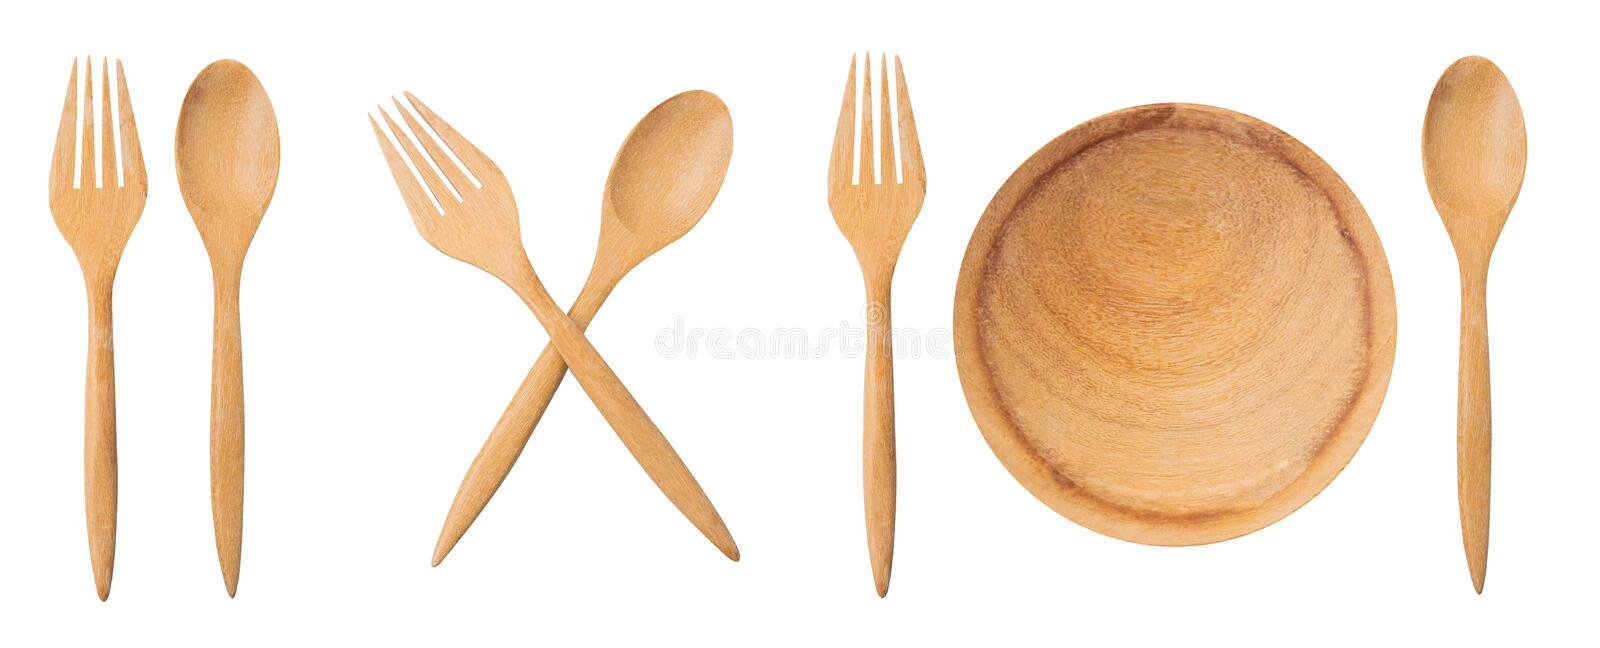 Wooden spoon and fork isolated on white background with clipping path. Healthcare and healthy food design concept. Natural kitchen stock photo